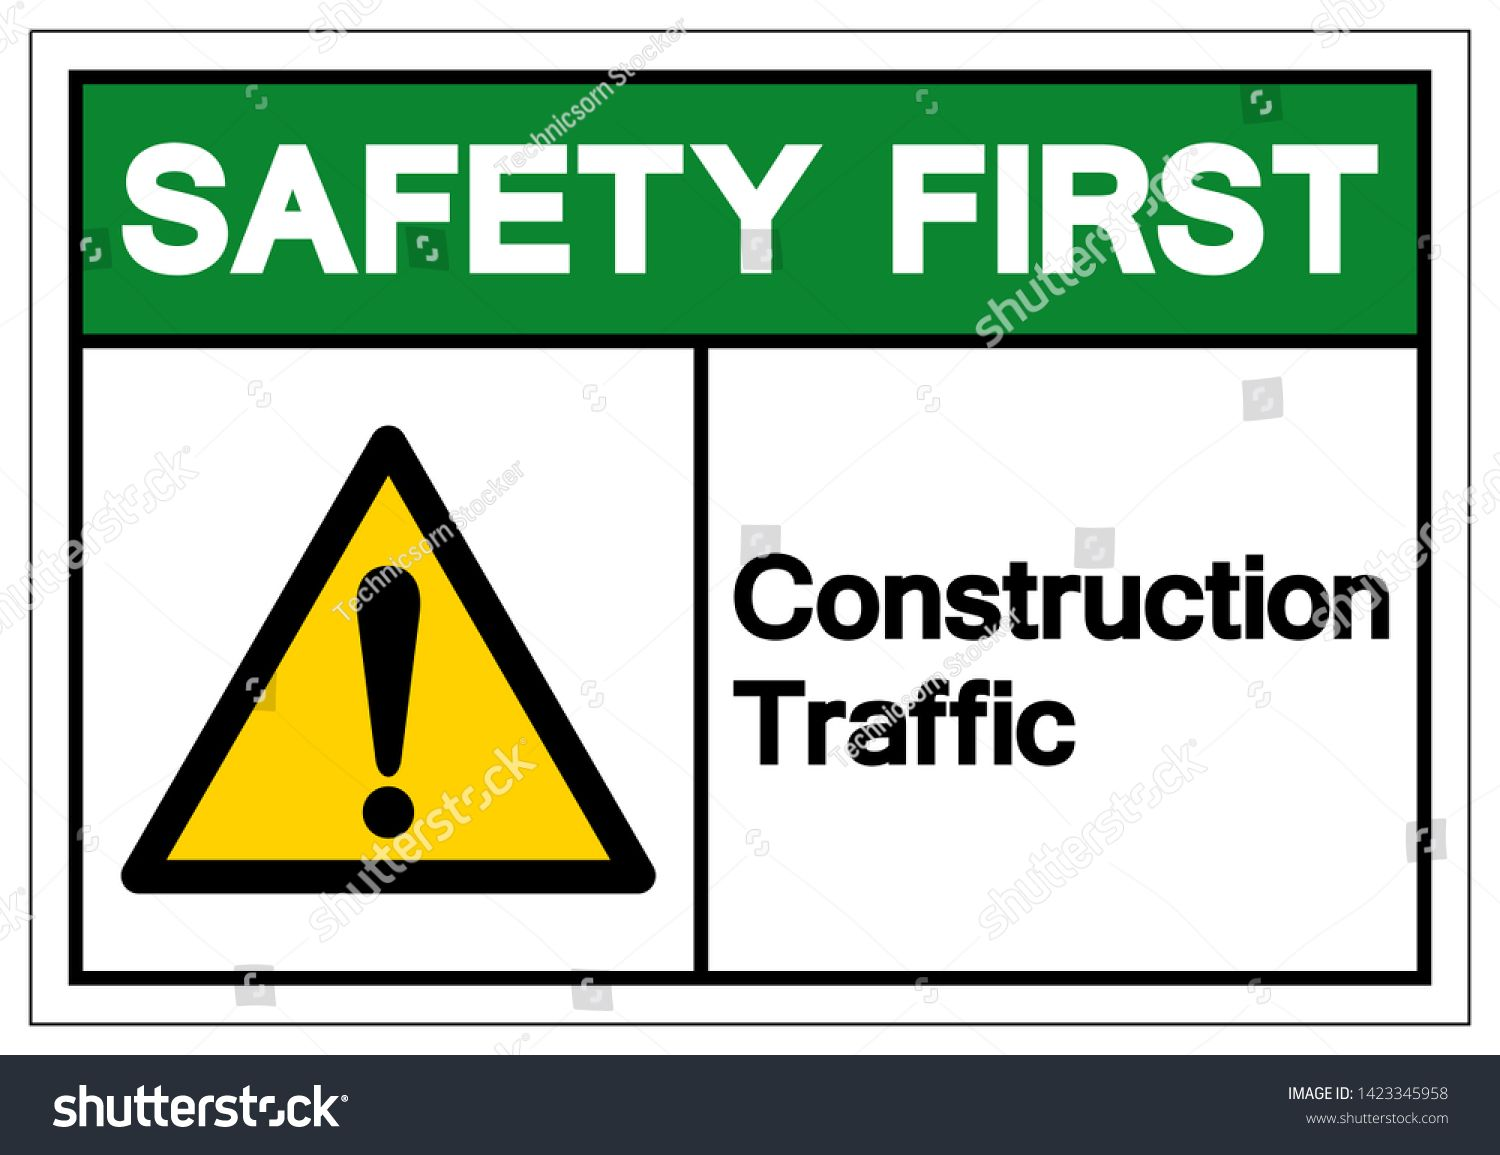 Safety First Construction Traffic Symbol Sign Vector Illustration Isolate On White Background Label Eps10 Traffic Symbols Hazard Symbol Vector Illustration